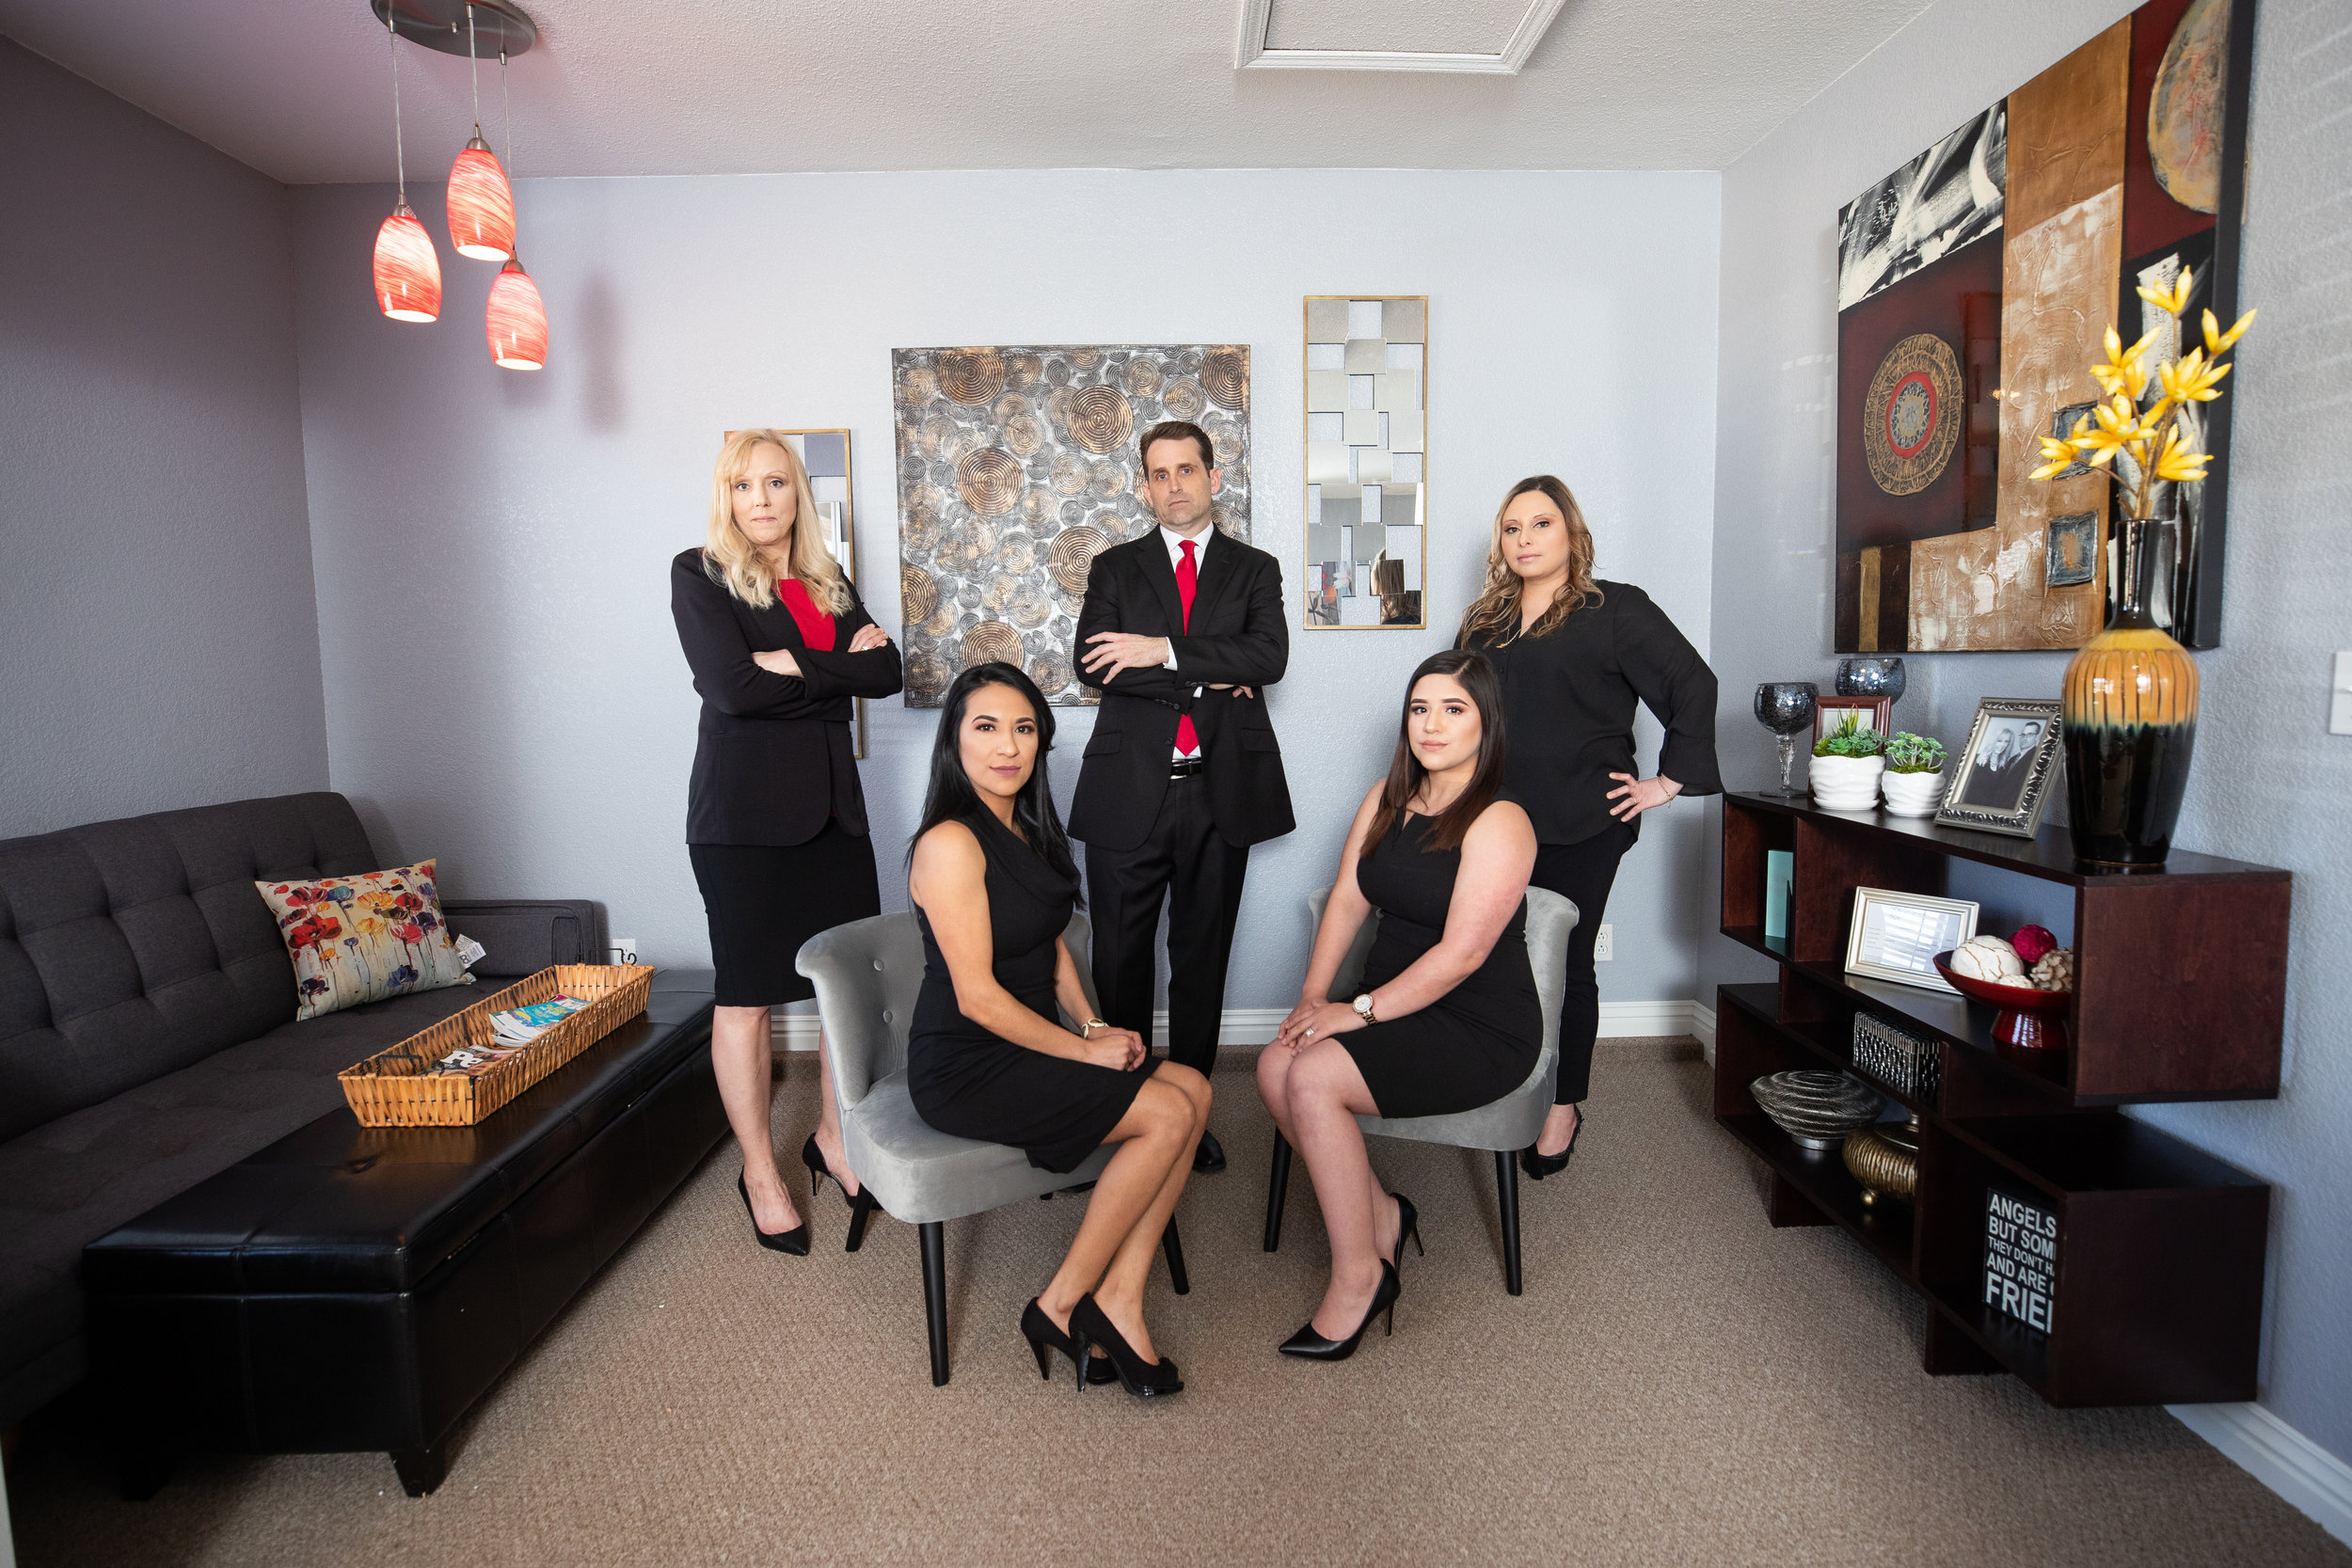 McManus Law Firm - Springdale Arkansas - 2019-32.jpg